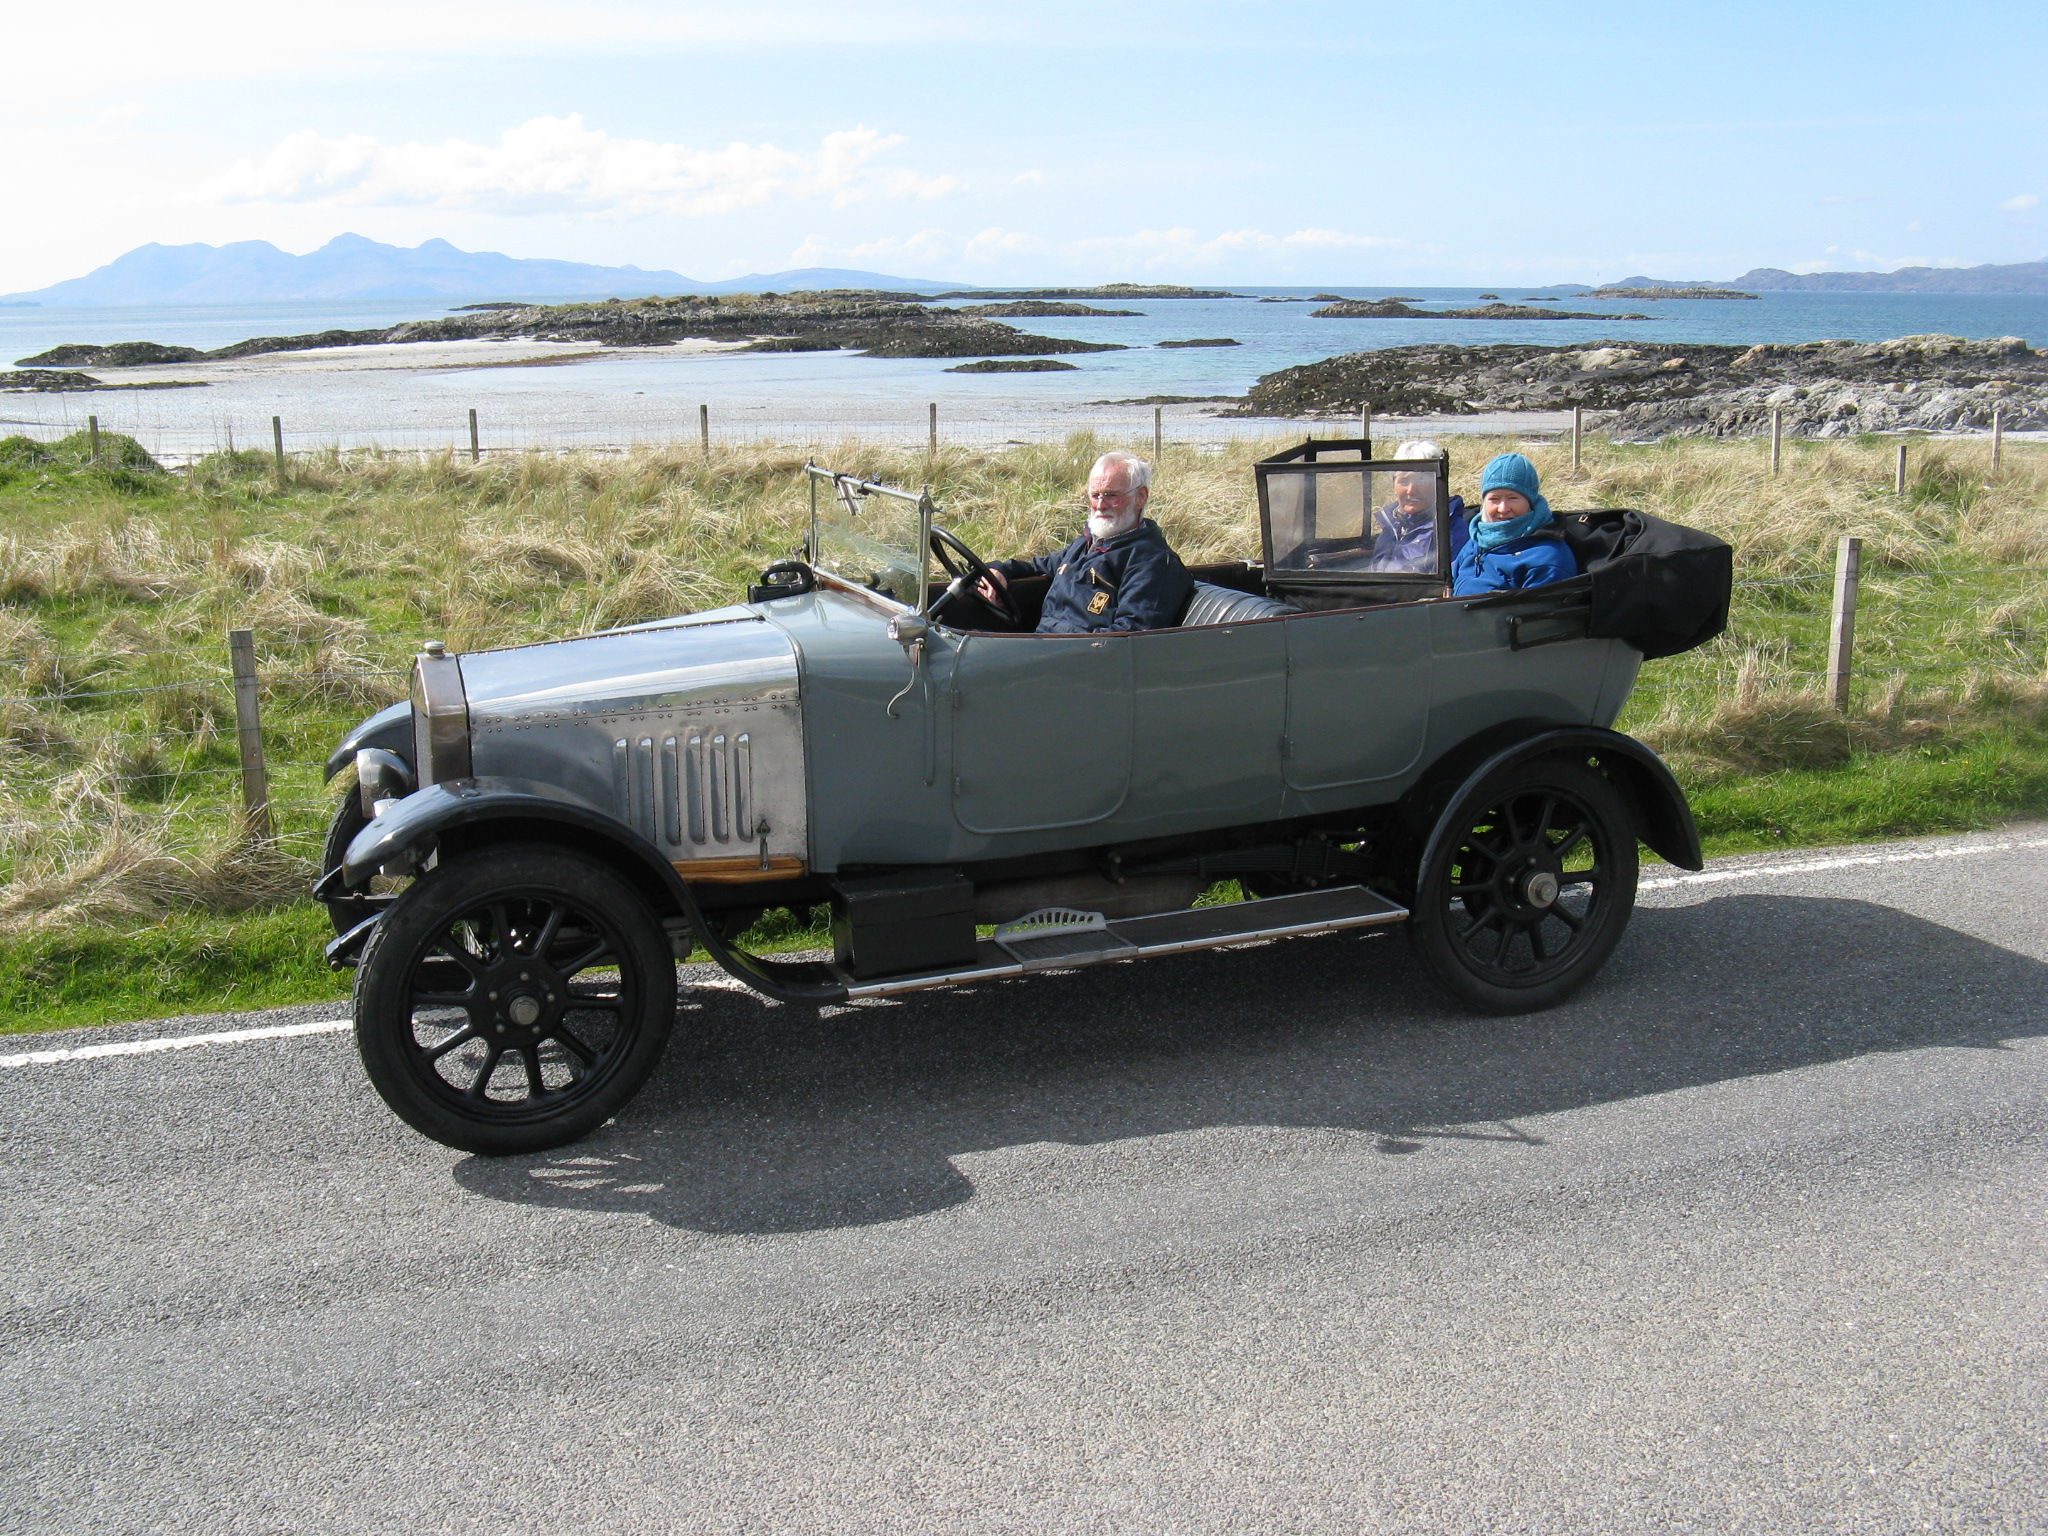 Picture @ Arisaig